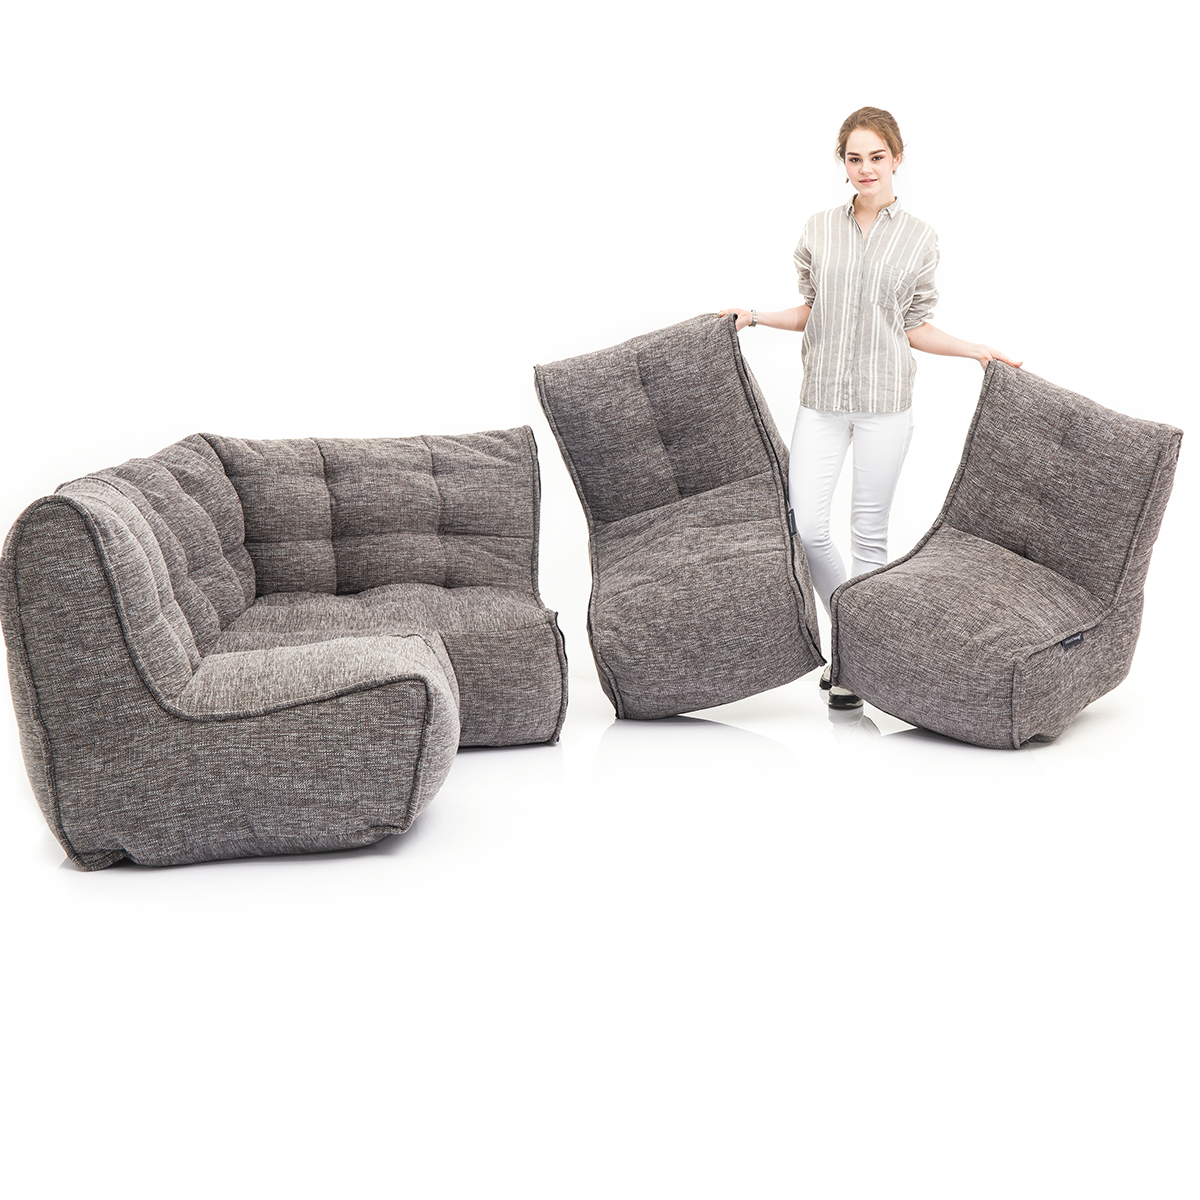 MODULAR bean bag sofas are lightweight and mobile (MOD 4 L Sofa configuration in Luscious Grey)